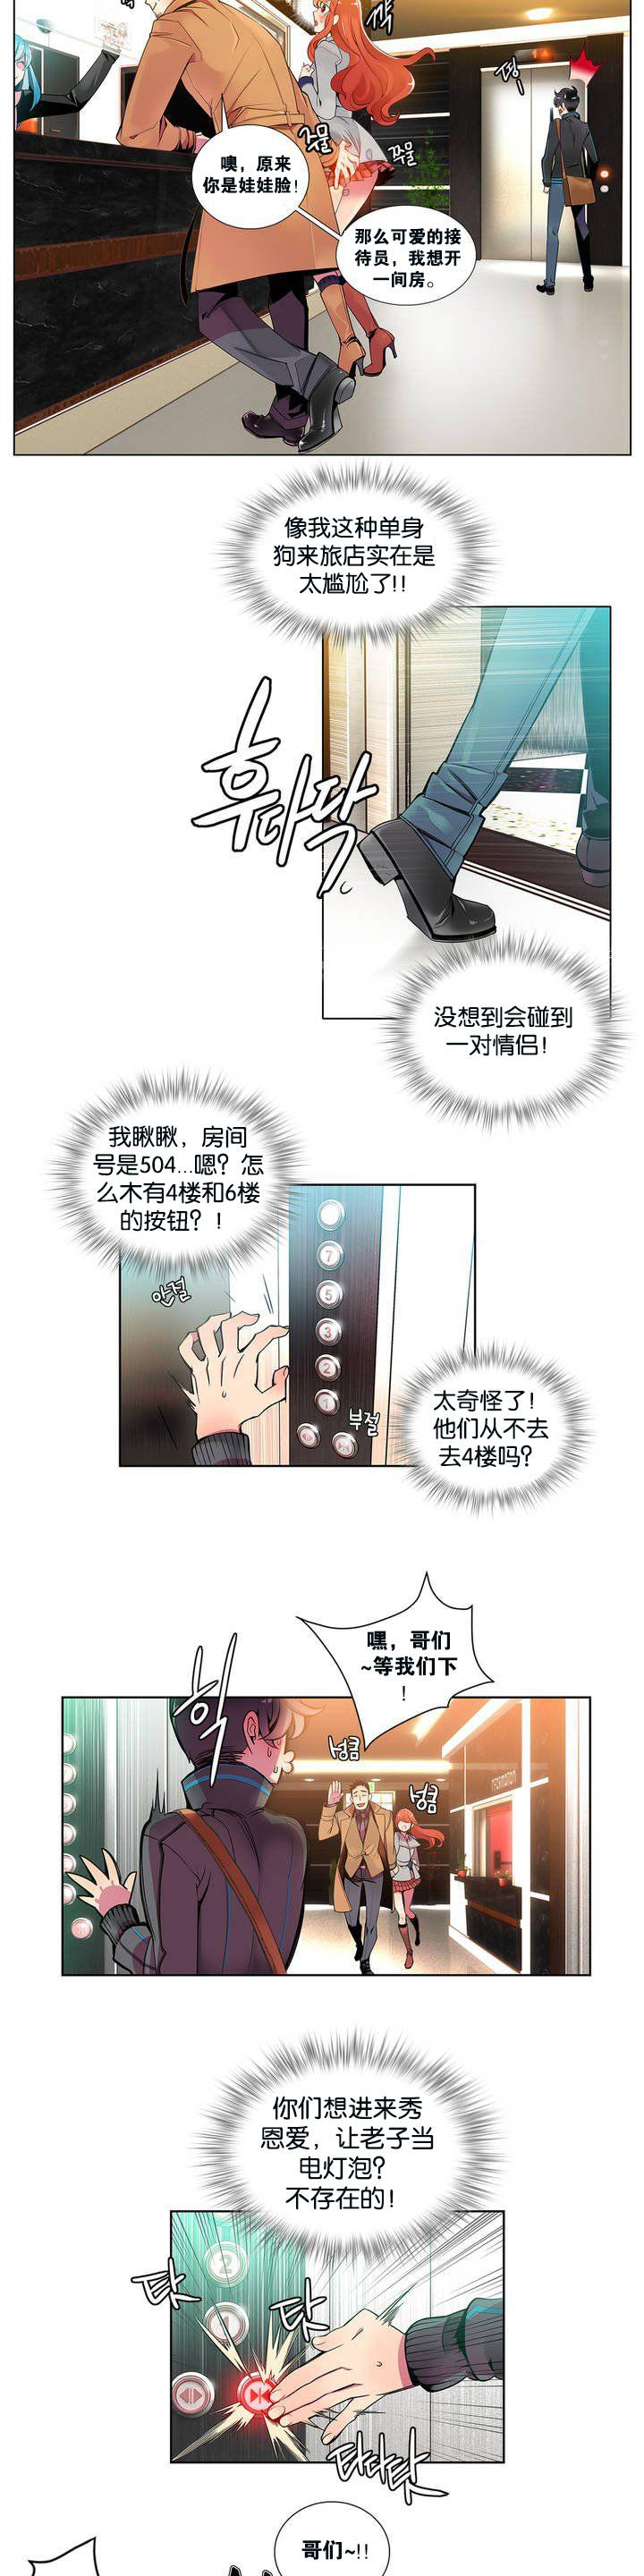 Lilith`s Cord   莉莉丝的脐带 Ch.1-37 7